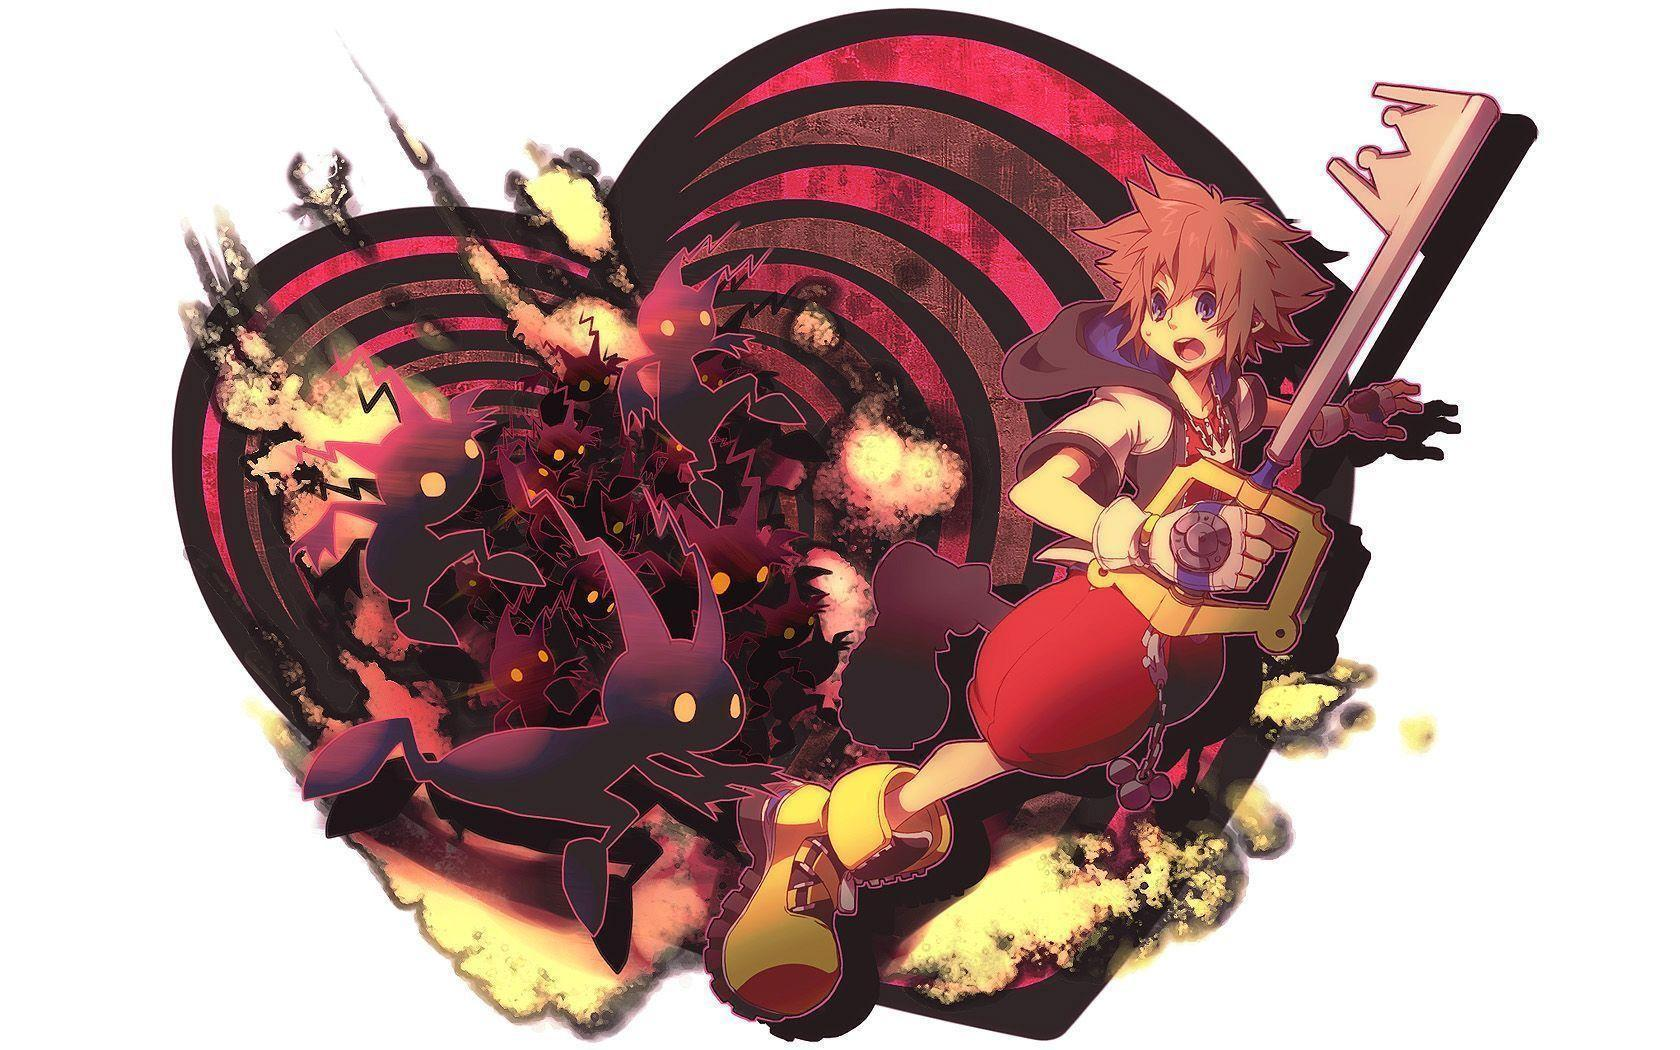 Images For > Kingdom Hearts Heartless Wallpaper